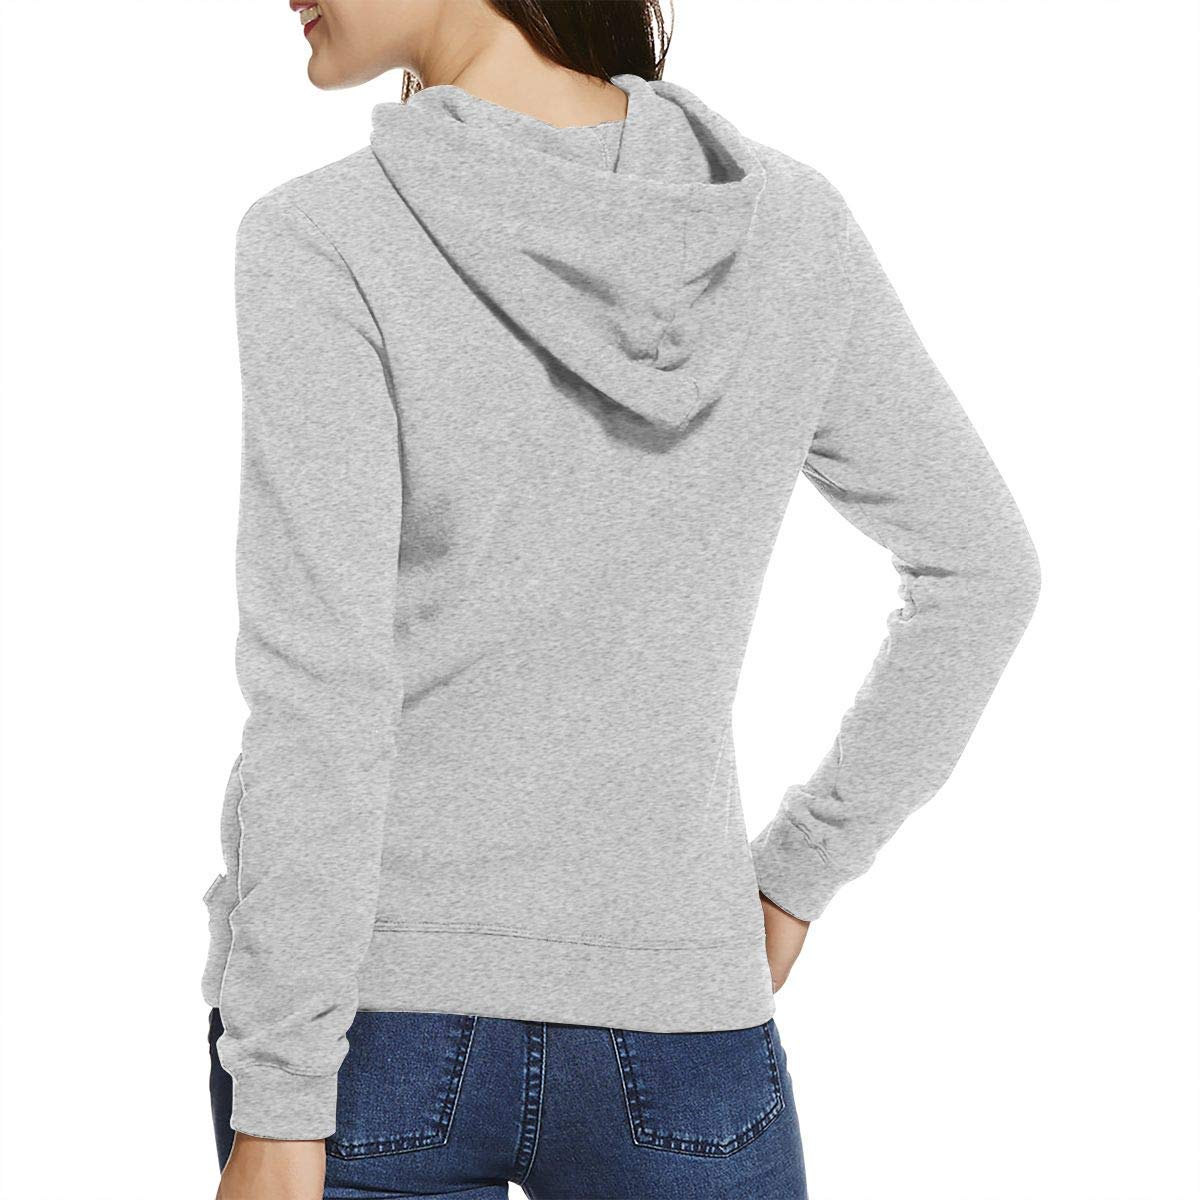 Younger man FAI-ry Ta-il Dont Worry Be Happy Womens Long Sleeve Casual Hooded Sweatshirt with Drawstring Gray